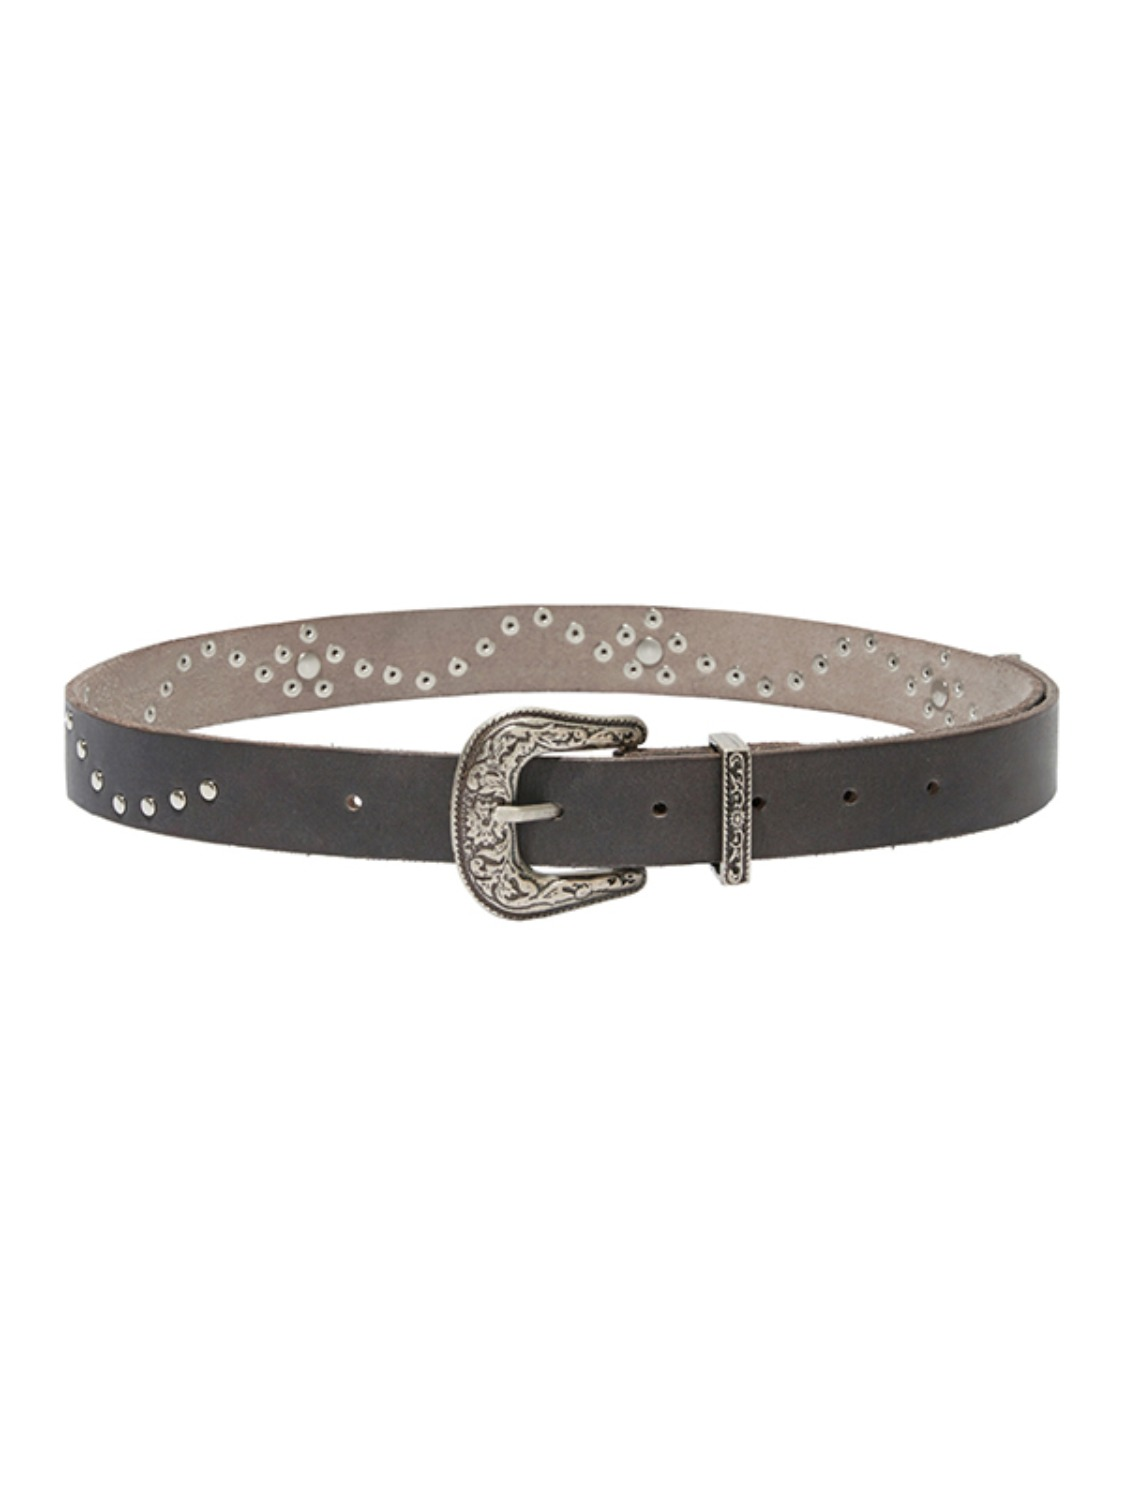 VINTAGE STUD LEATHER BELT KS [CHARCOAL]